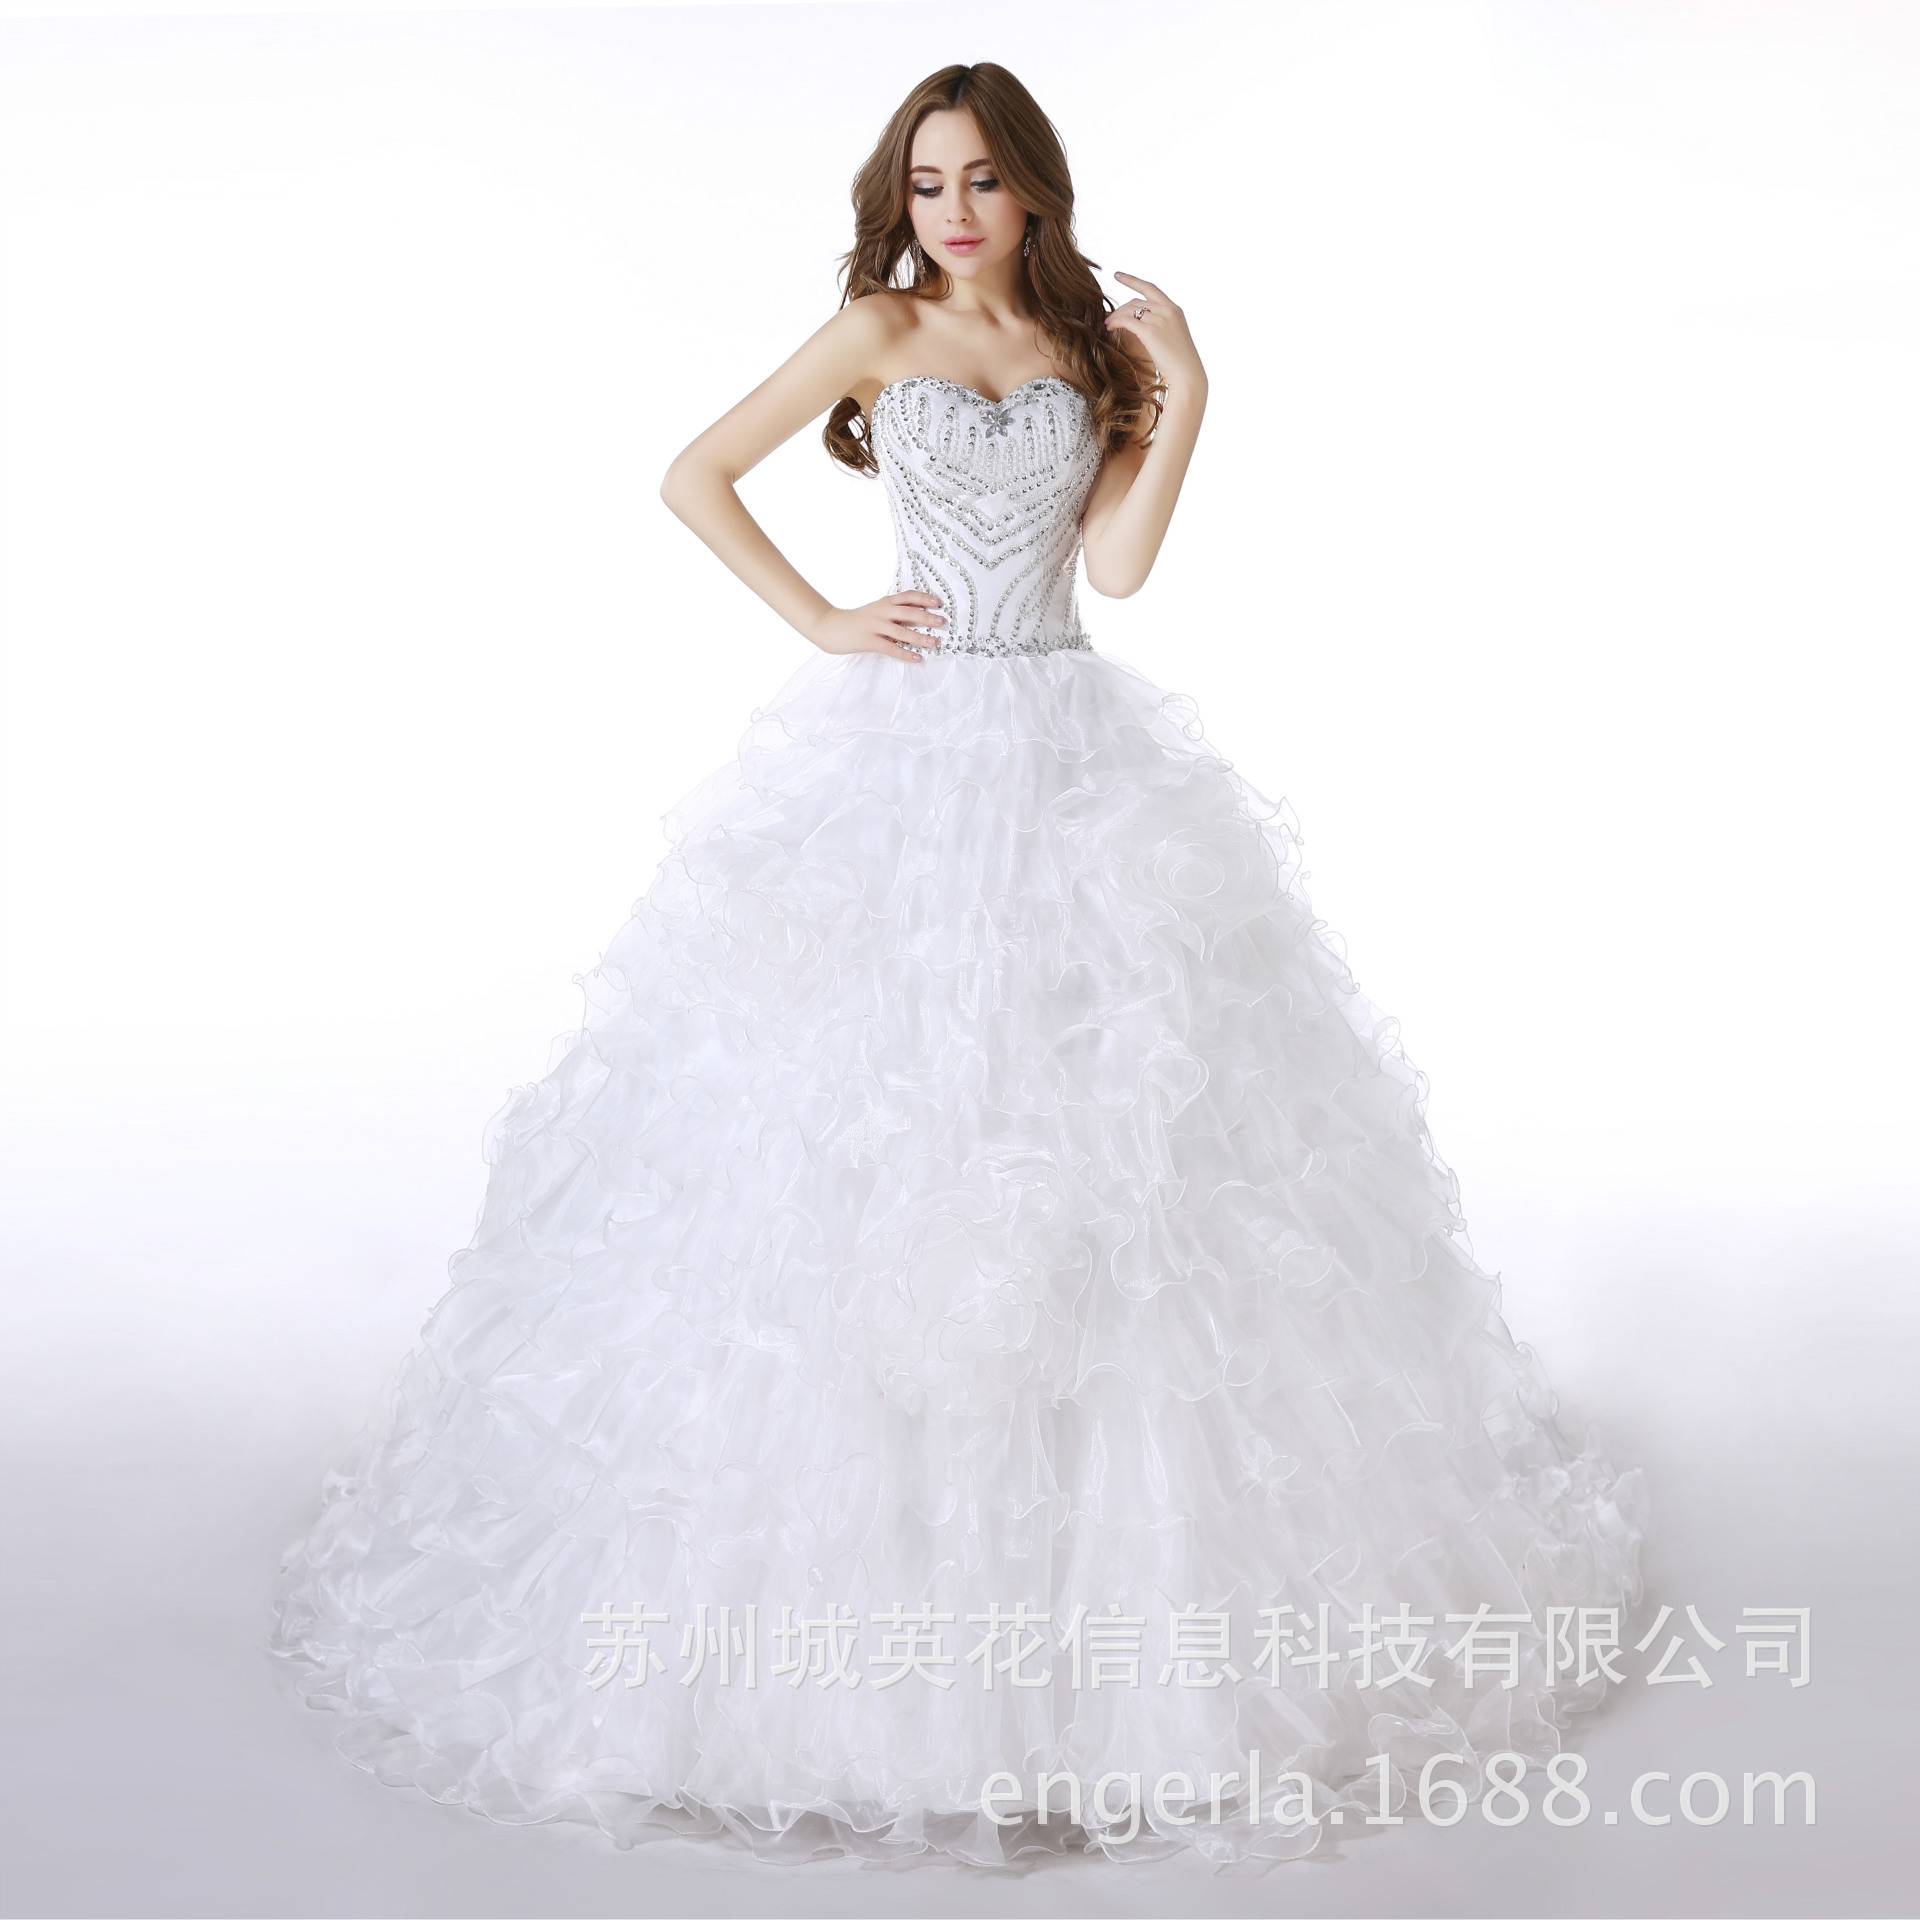 Luxury Crystal Beads Sweetheart Princess Wedding Dress Ball Gown Plus Size Court Train Organza Tulle Wedding Dresses Trouwjurk